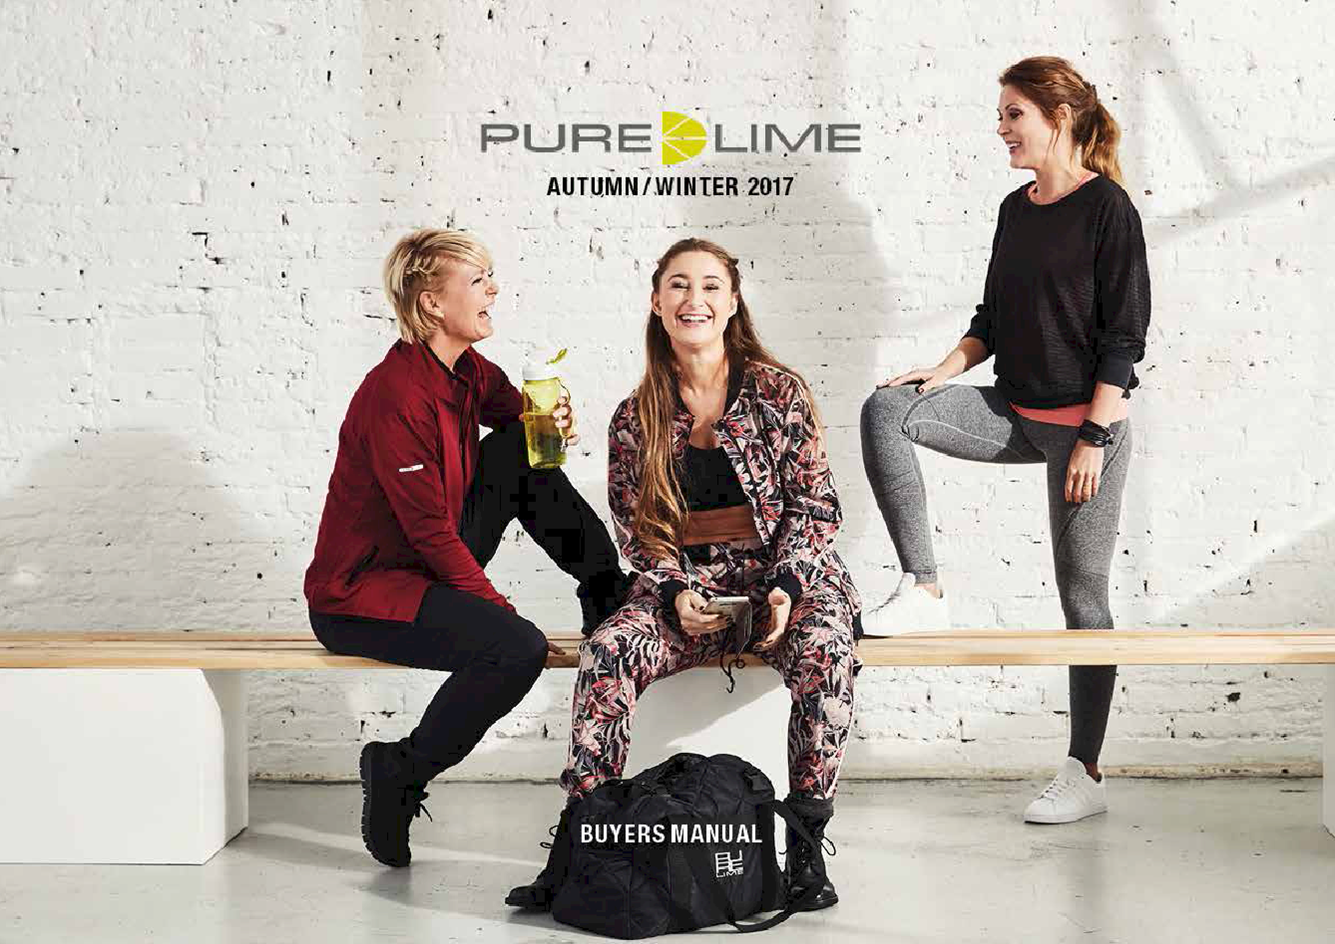 Catalogus AW2017 Pure Lime